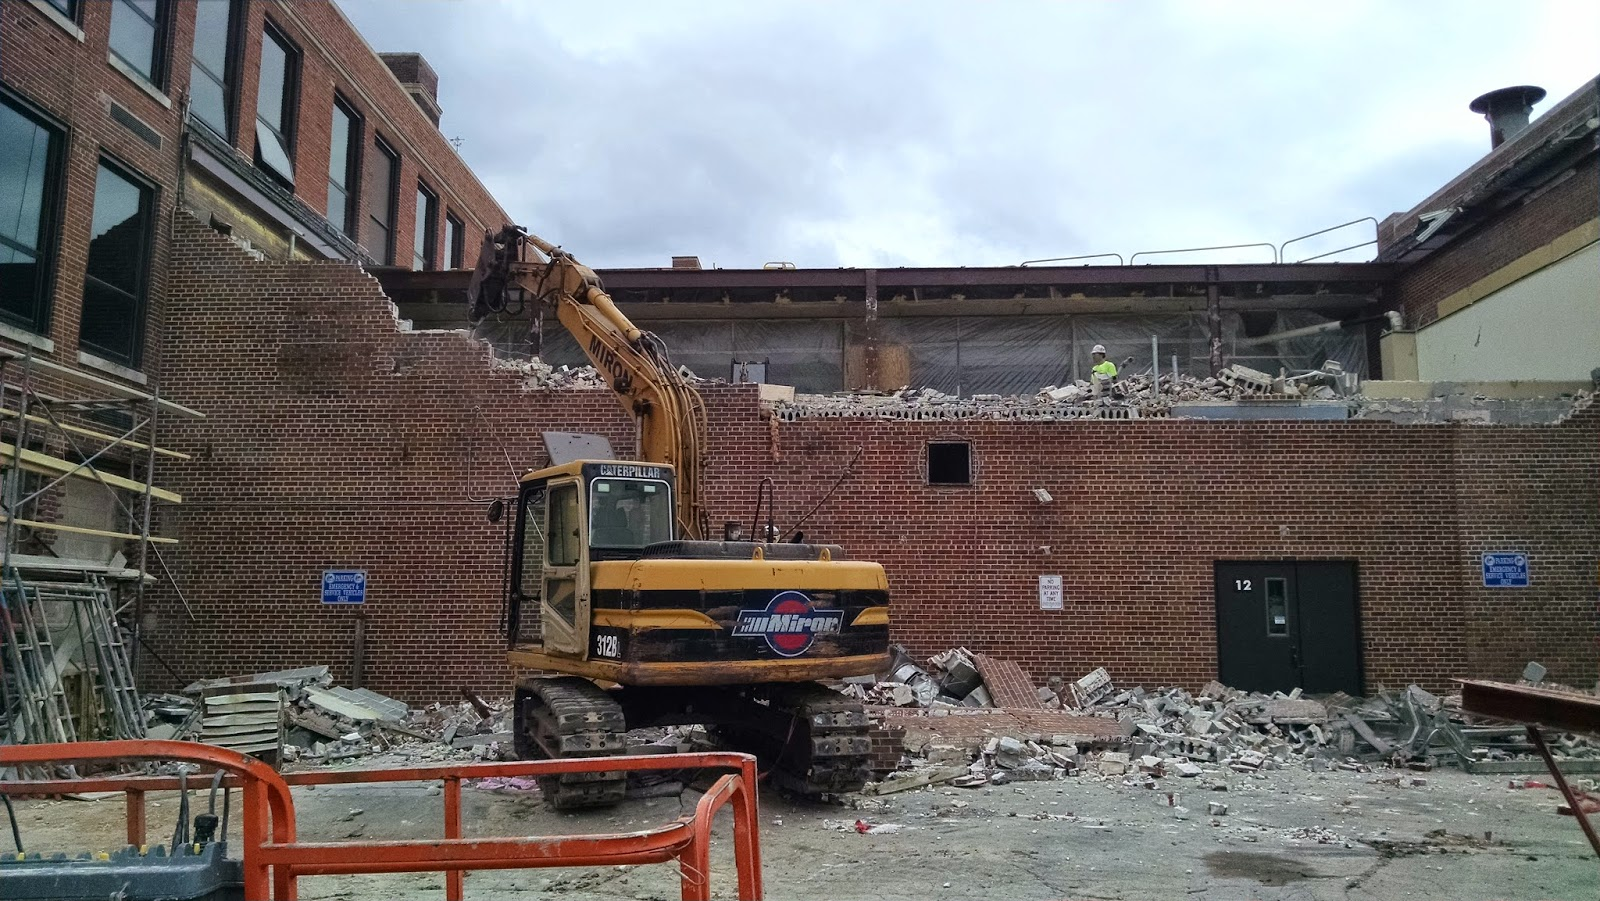 Library outside wall being removed